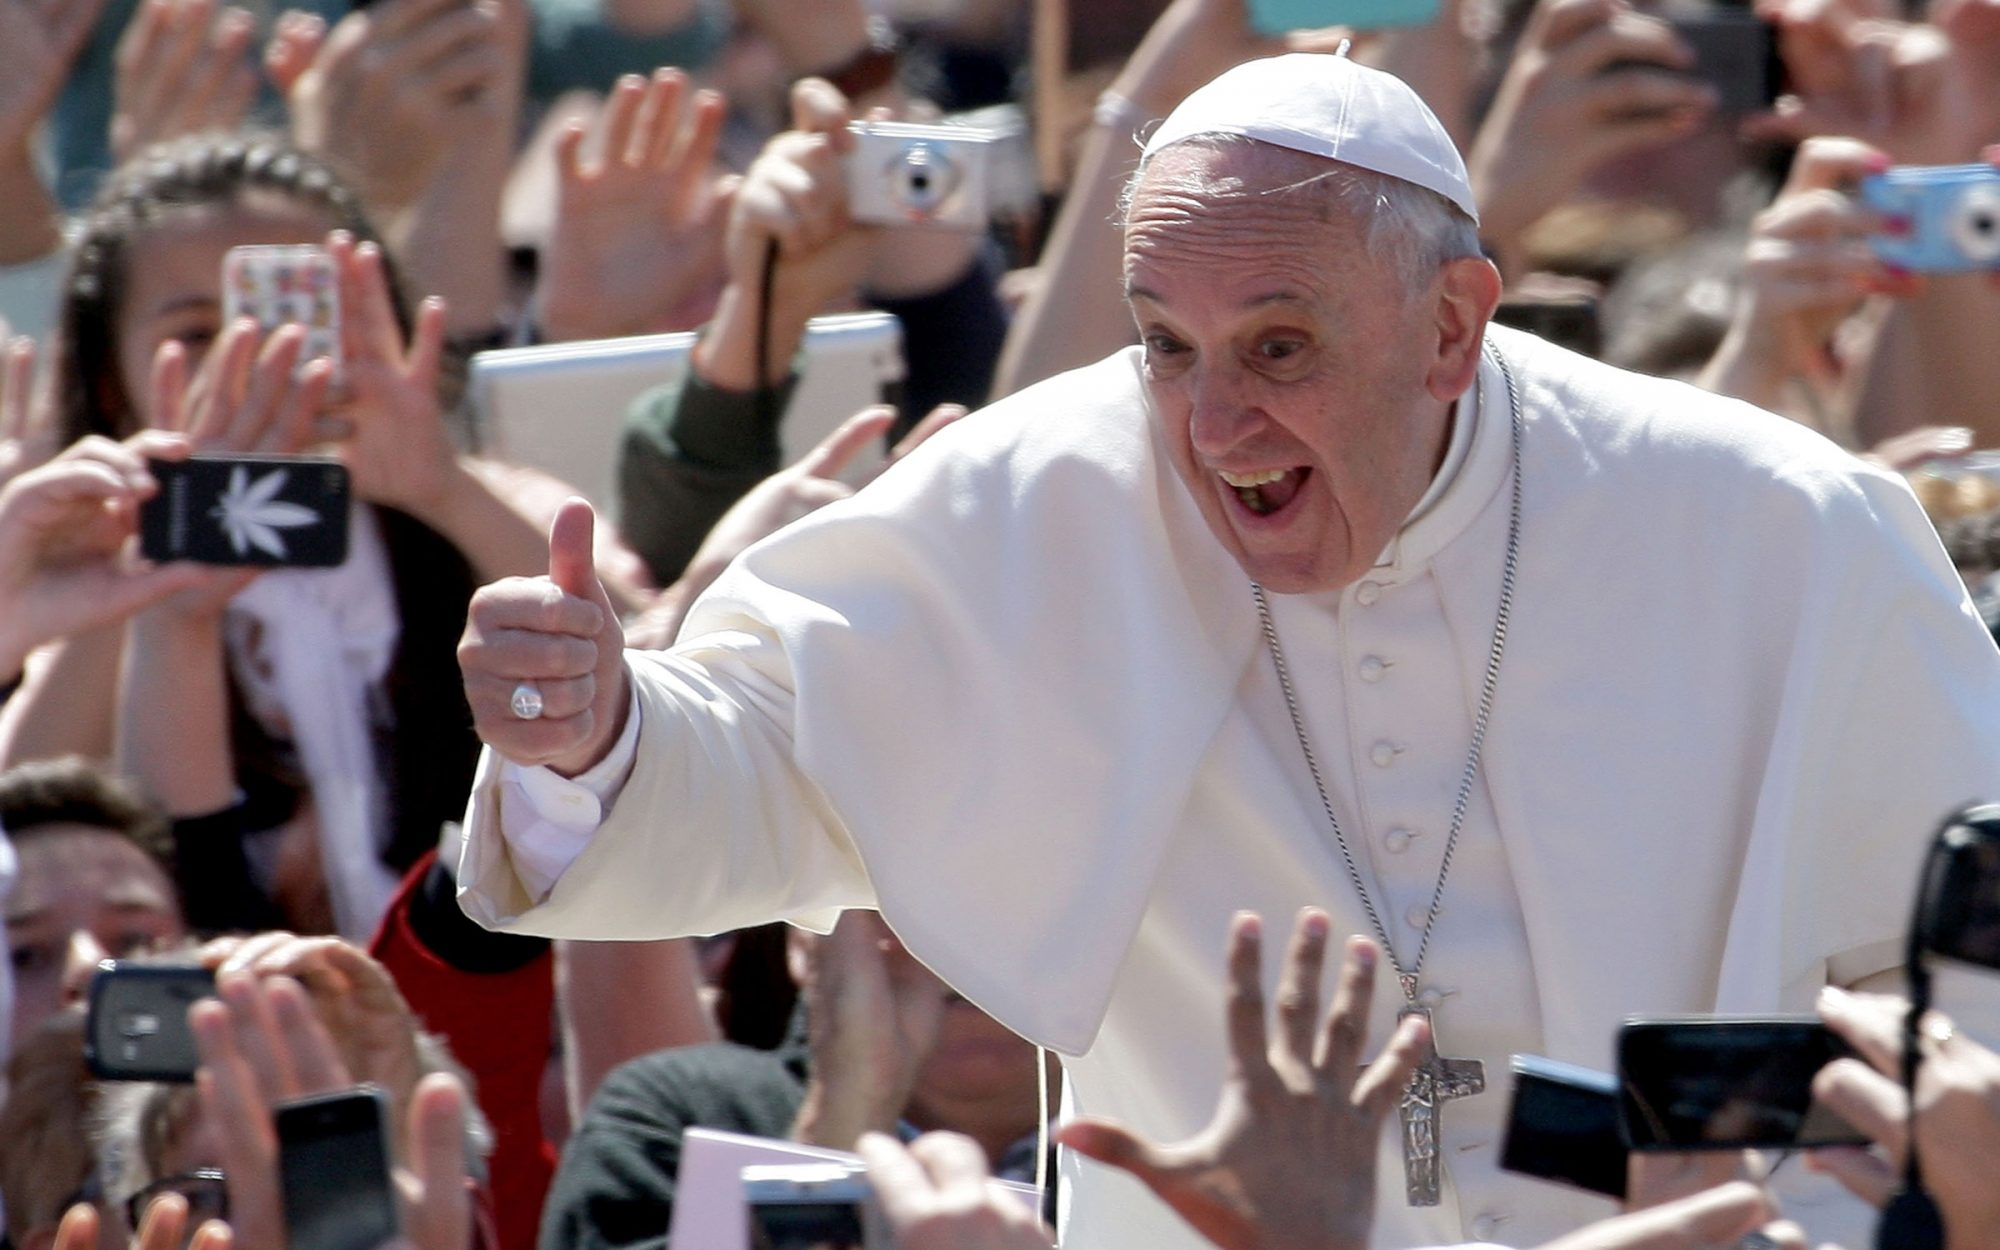 Meet Pope Francis and play ping pong for $25,000